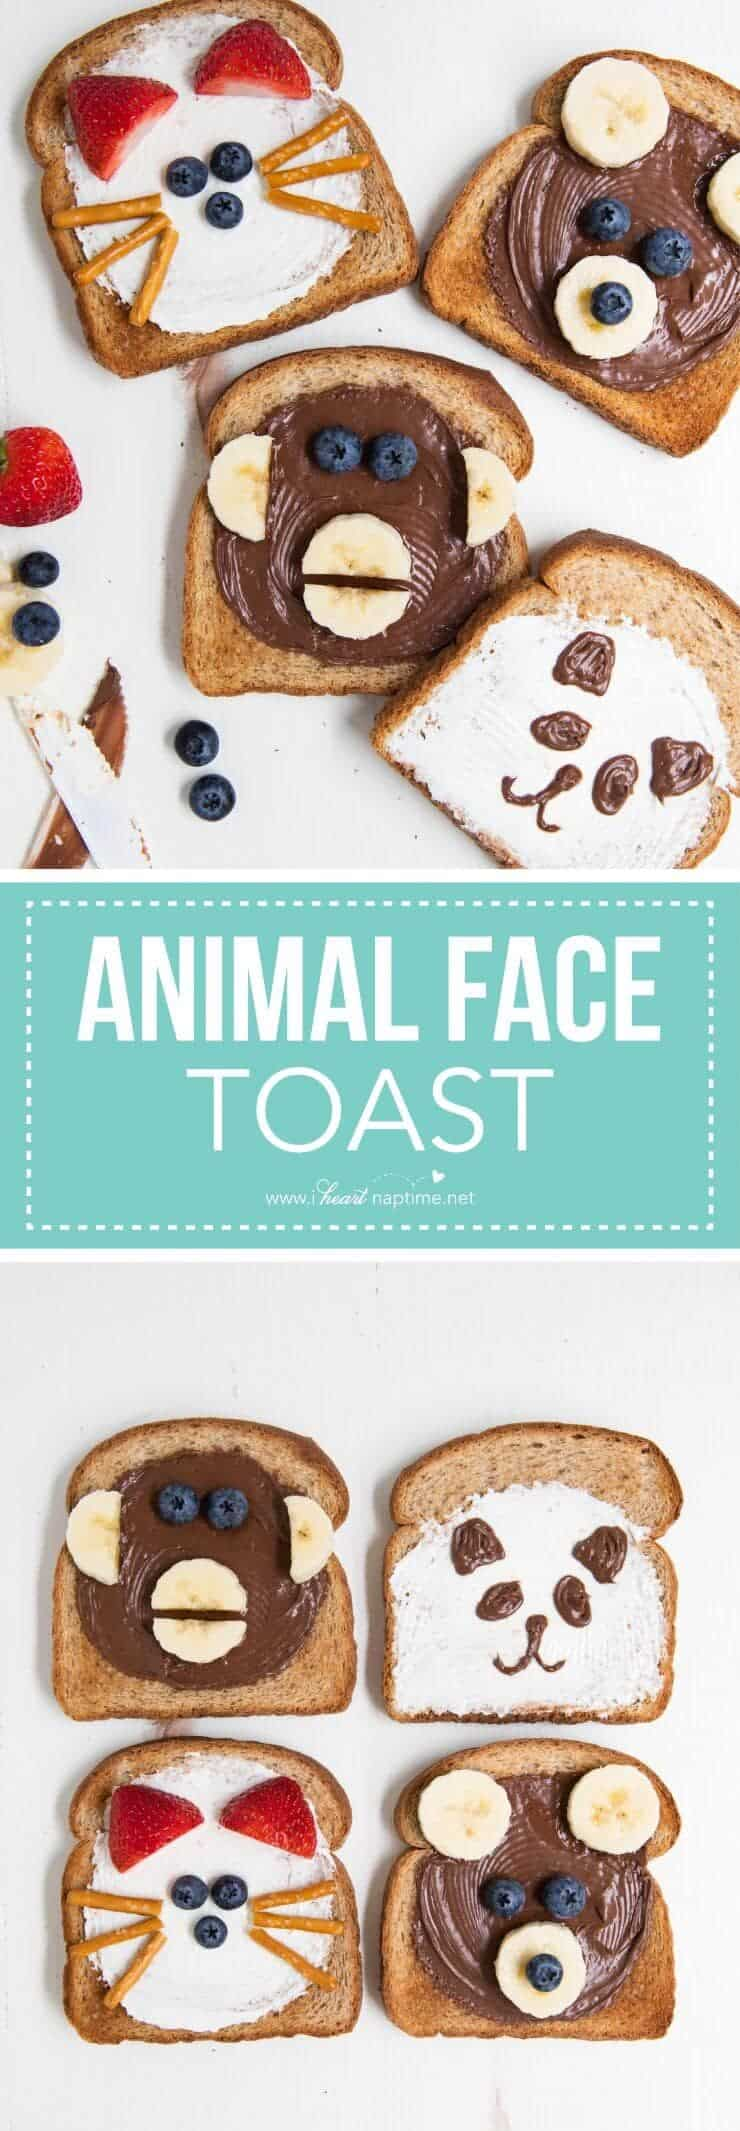 Animal face toast -a quick, fun and delicious after school snack idea for kids.